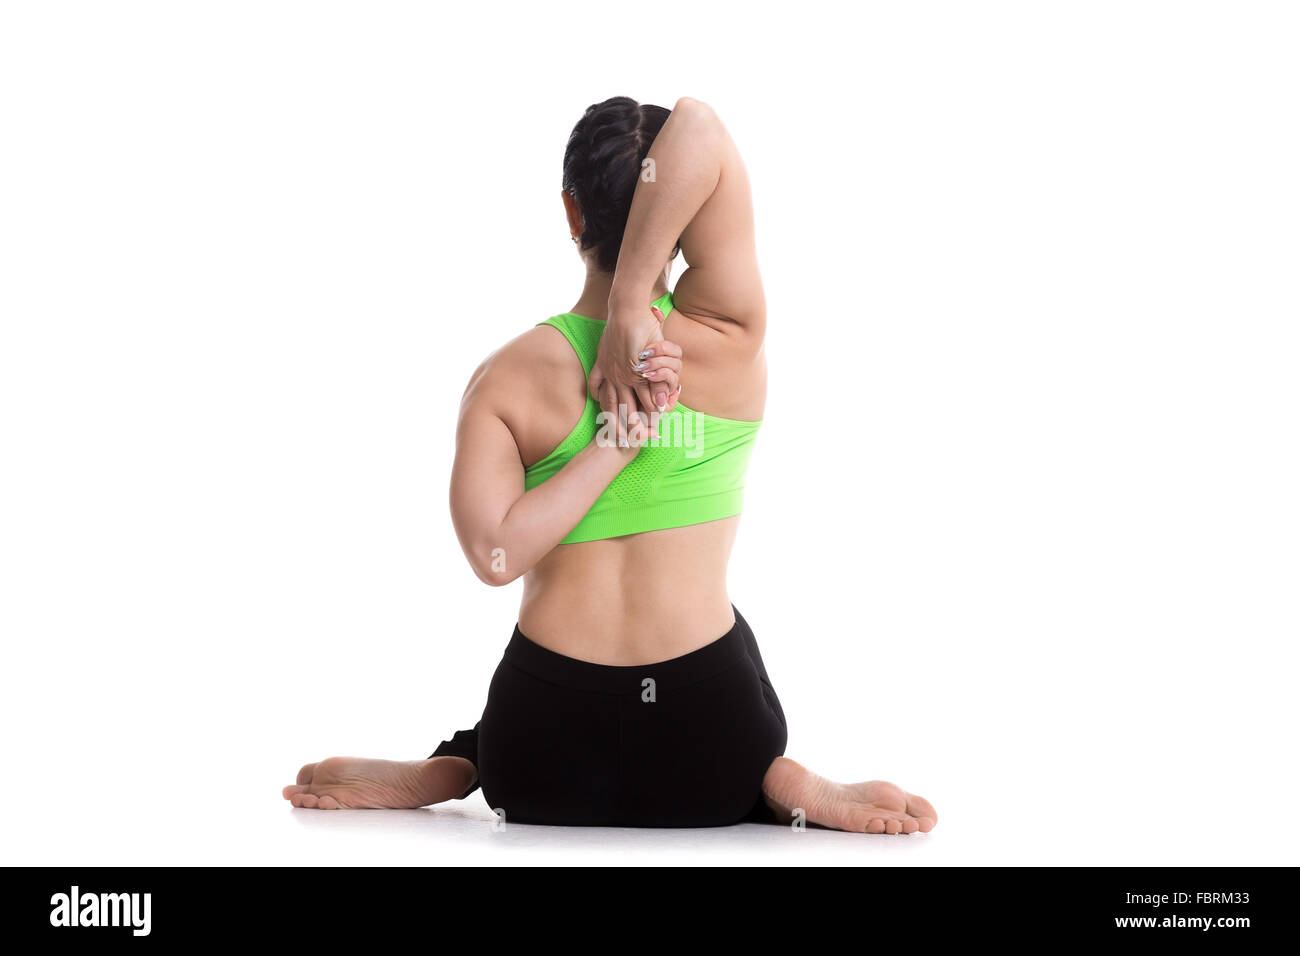 Sporty girl doing yoga training, sitting in Gomukhasana, Cow face pose, asana for stretching triceps, shoulders - Stock Image